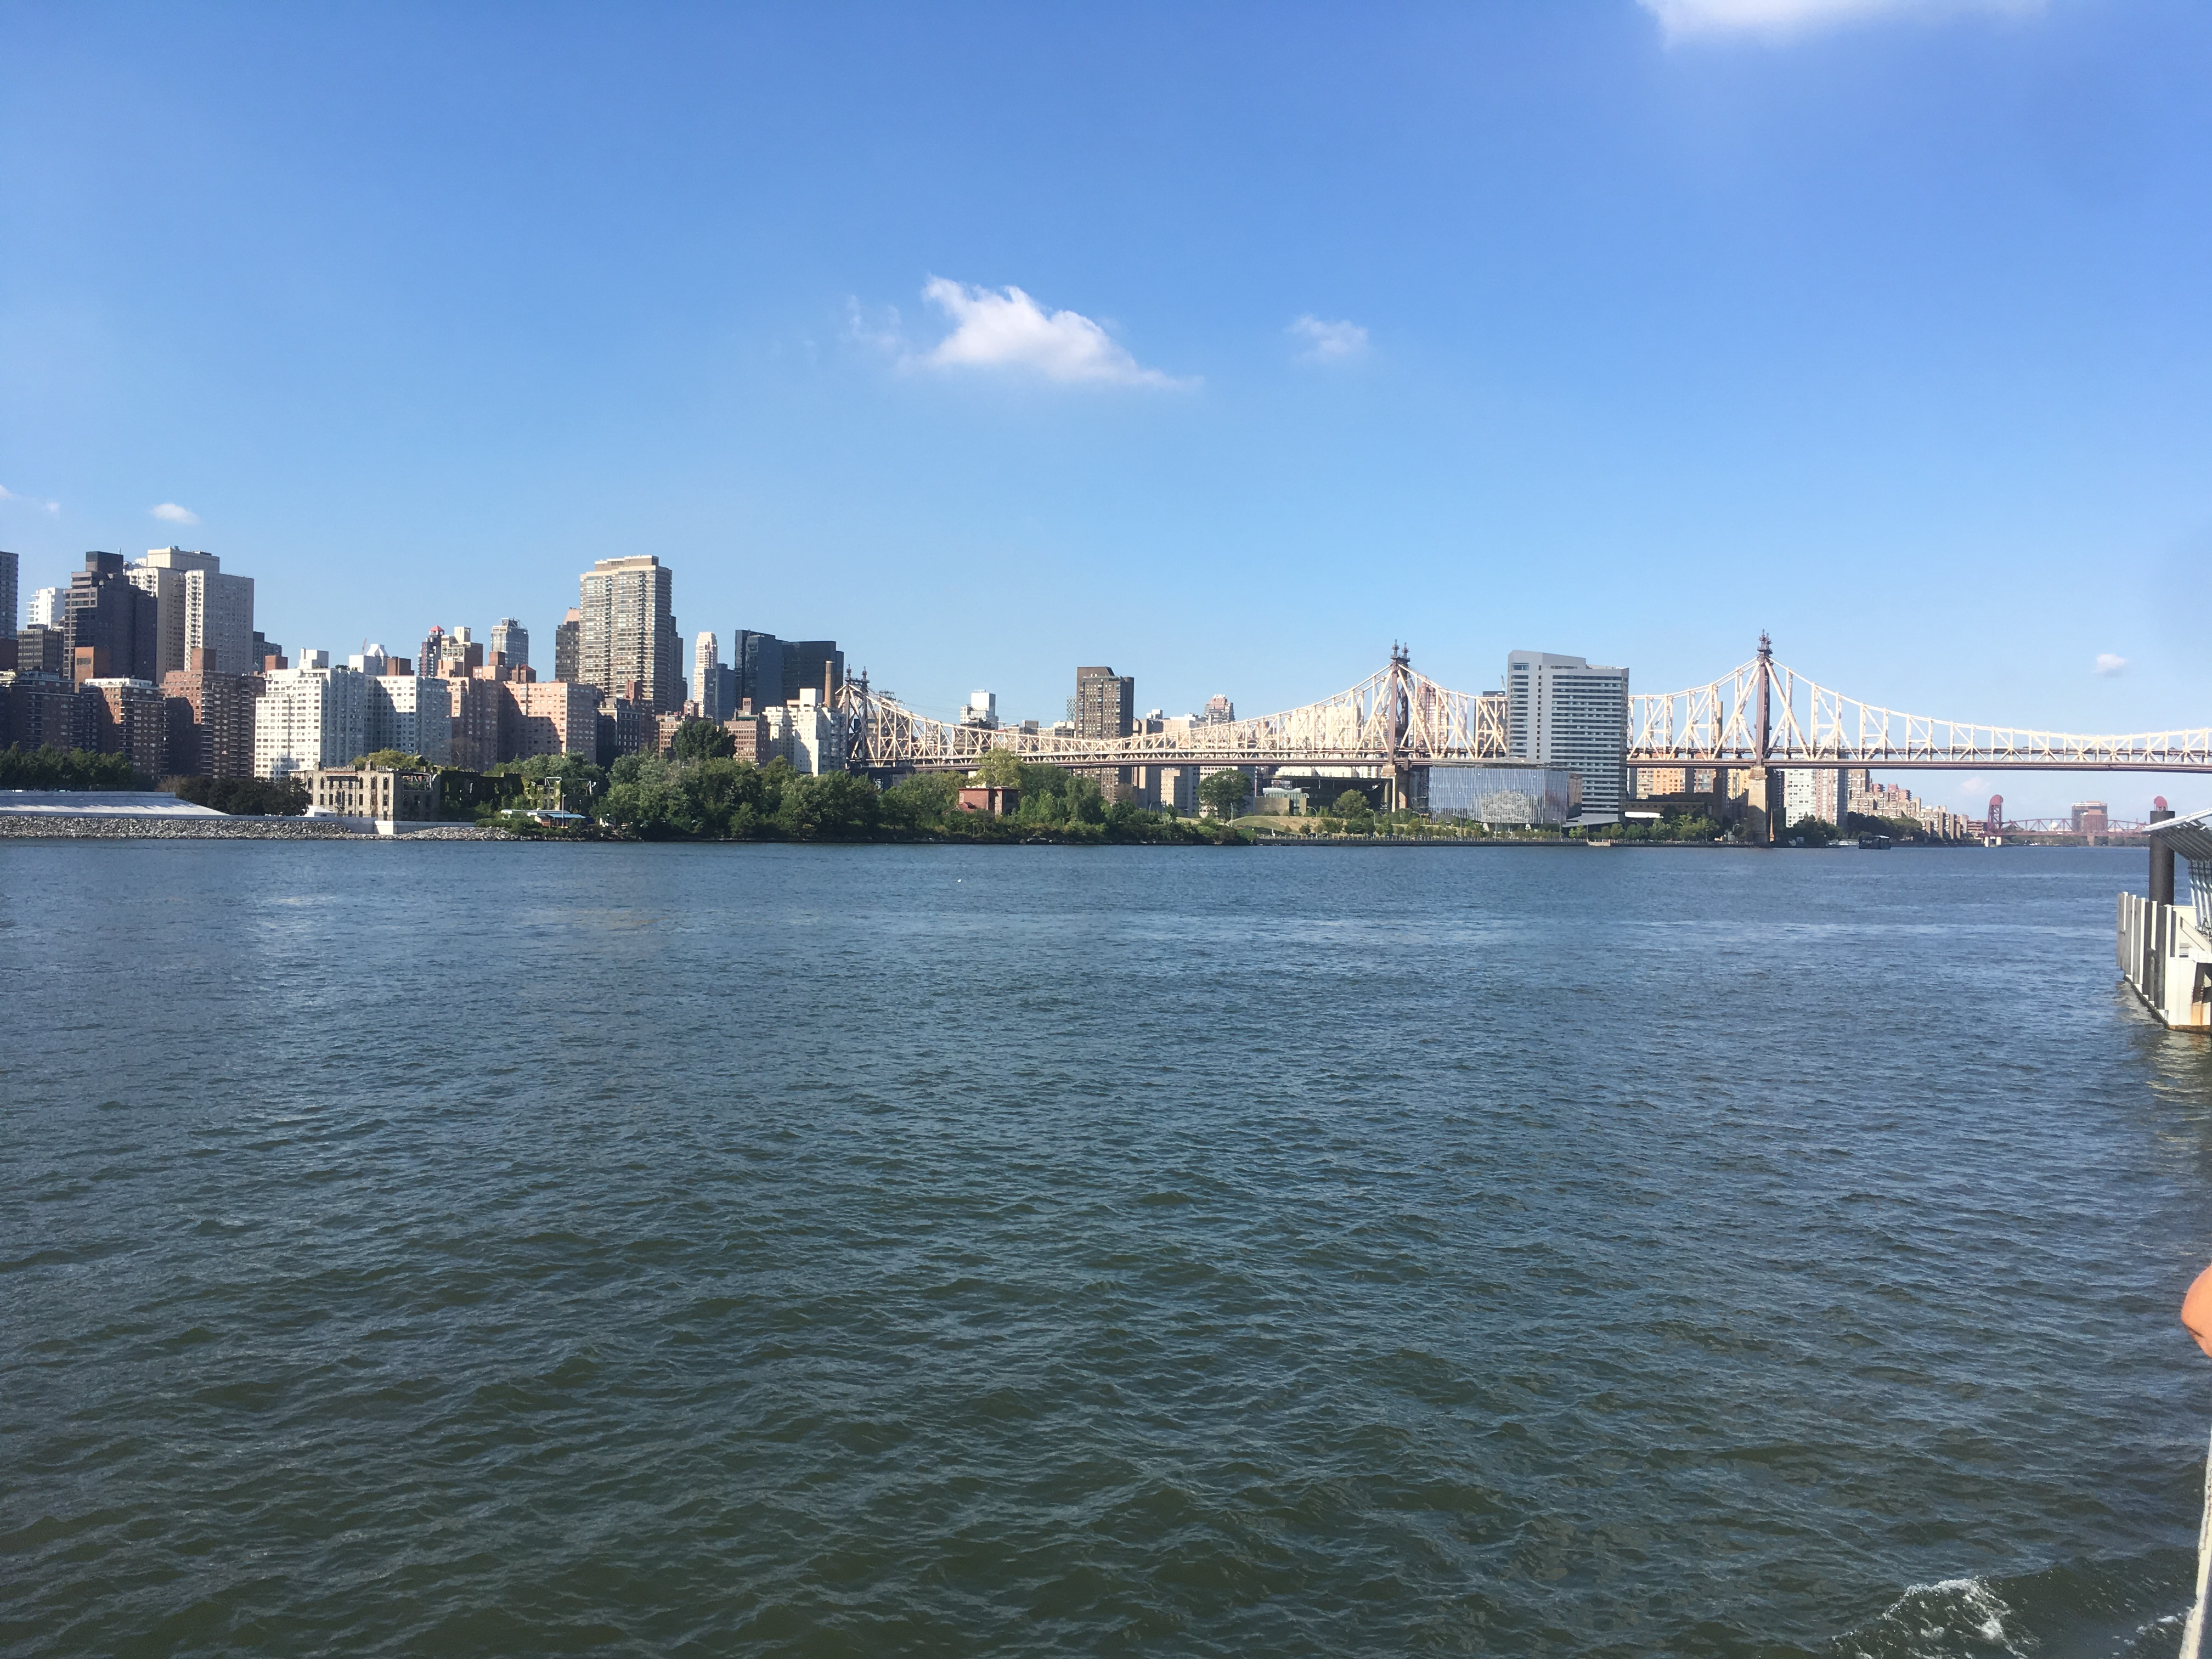 Roosevelt Island - Our destination